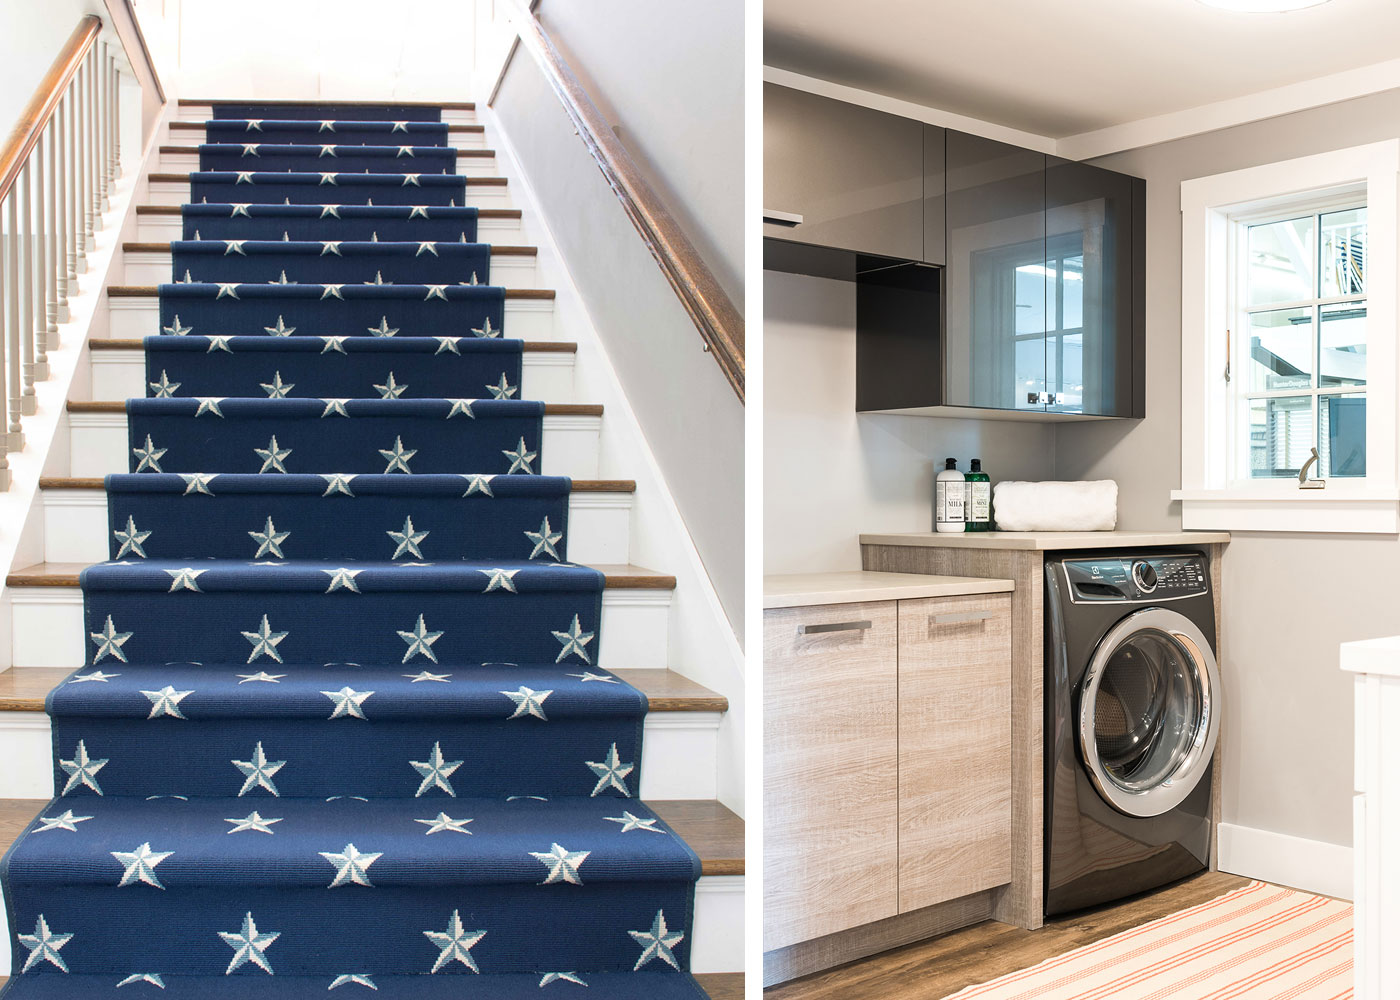 stairs with star carpeting and laundry room set up at Marine Home Center